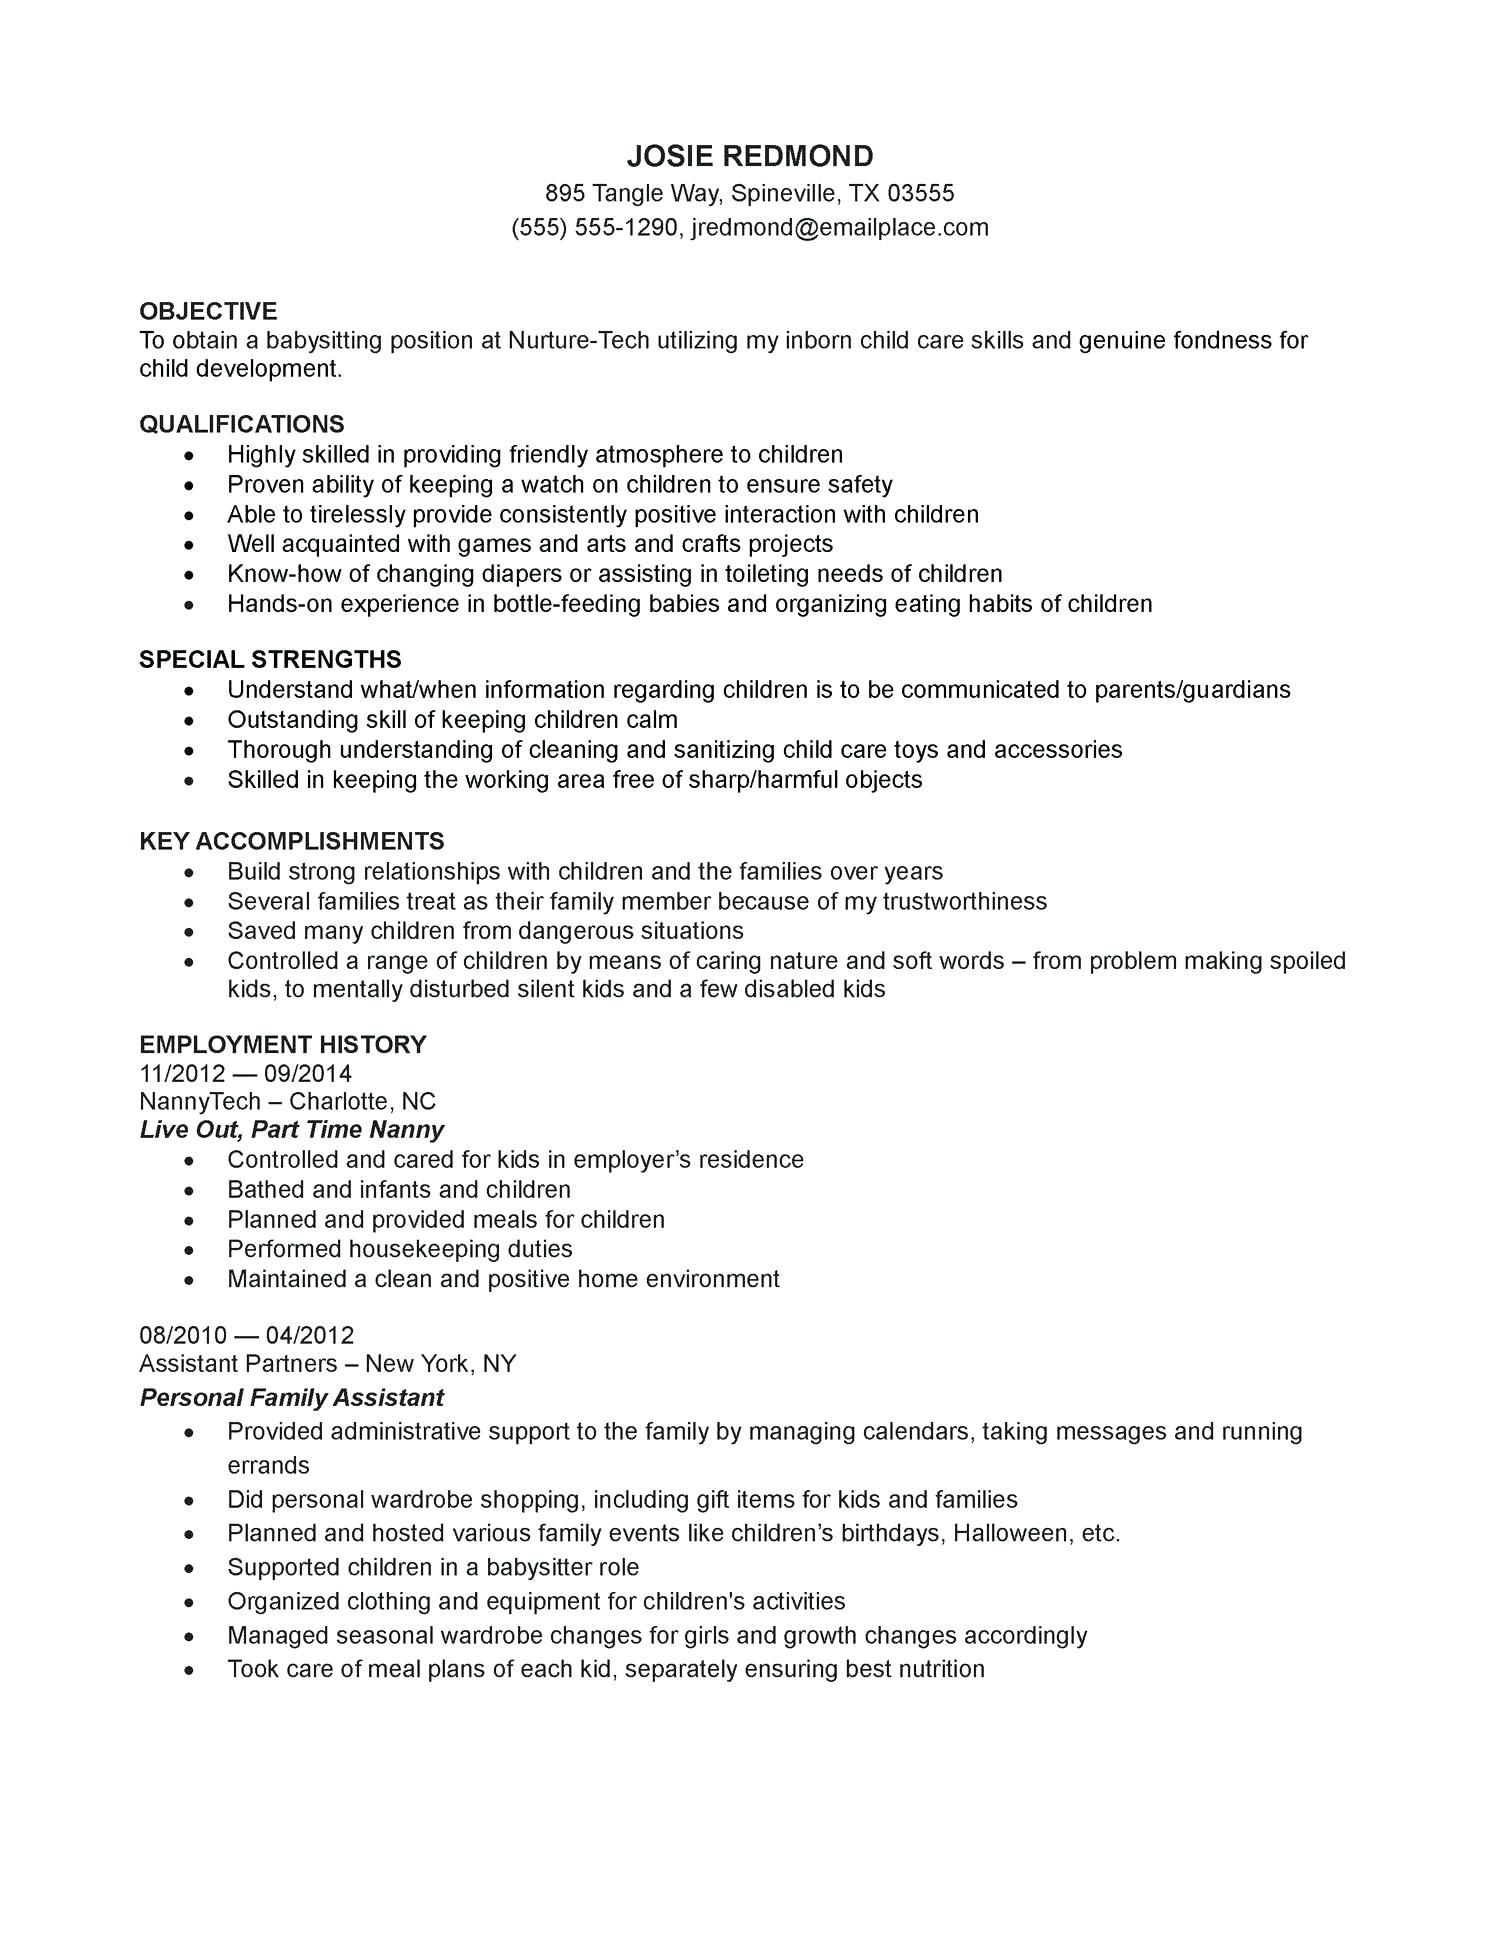 resume template college Professional in 2020 Nanny job